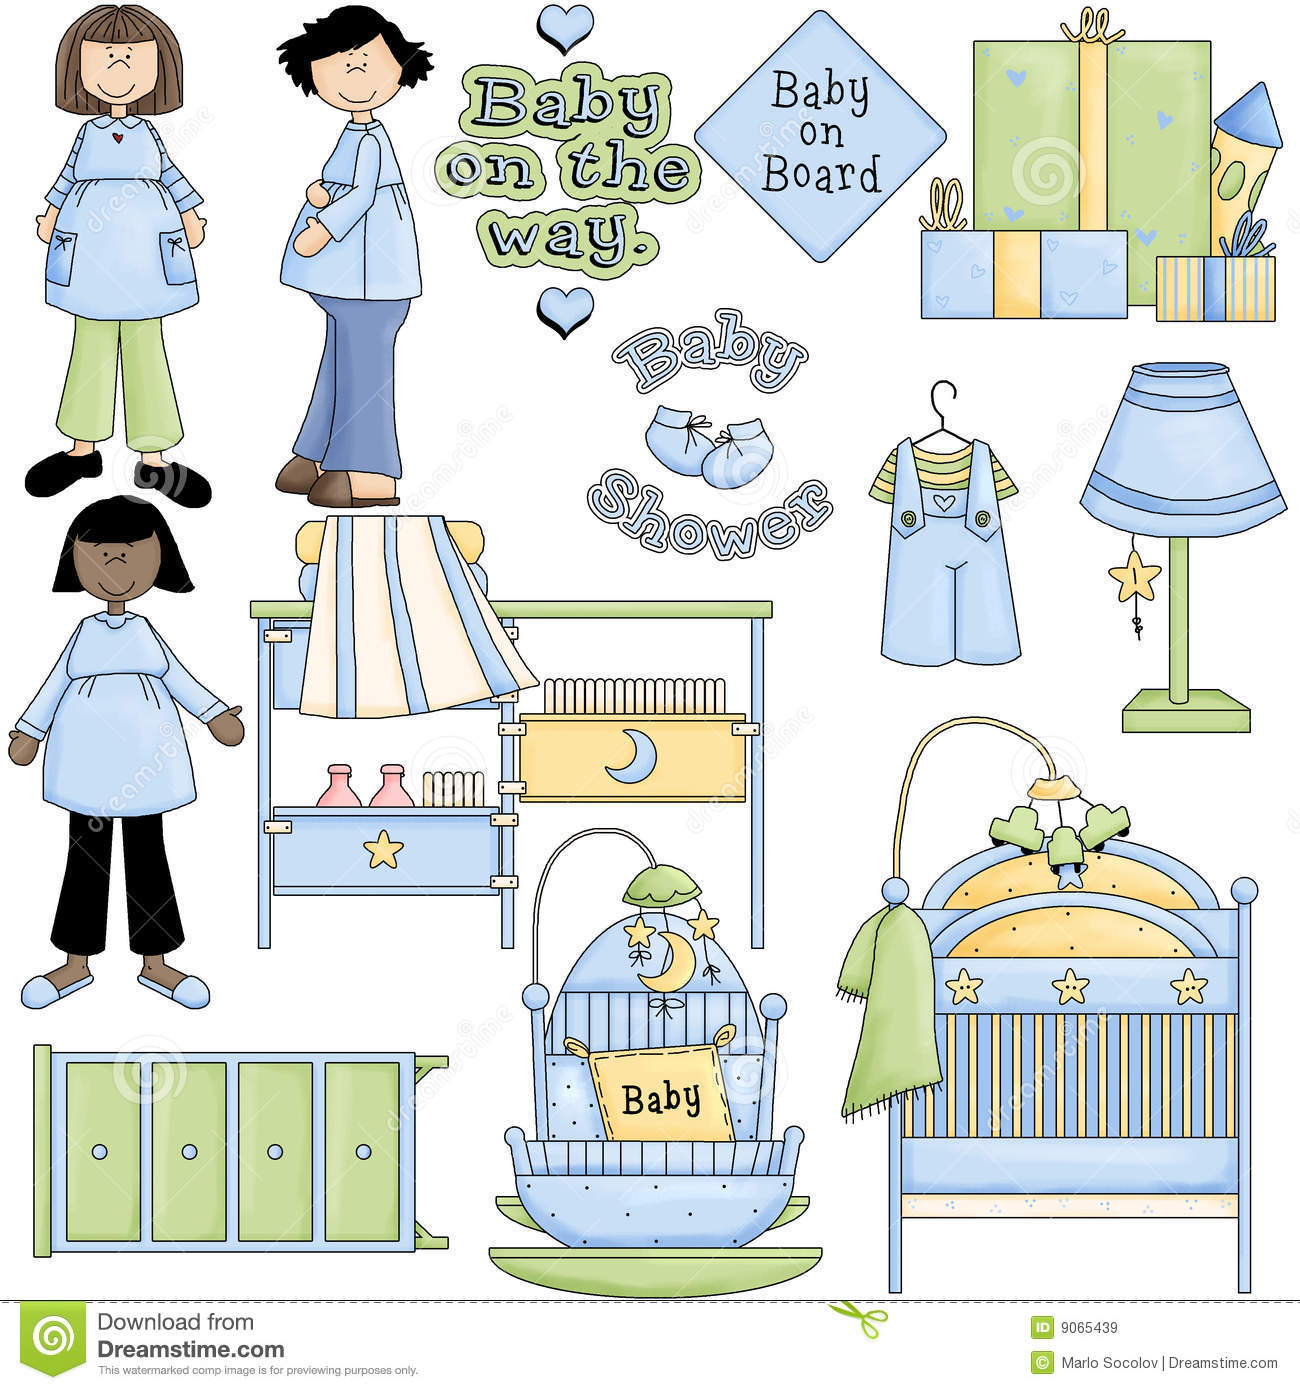 free clipart baby shower boy - photo #49